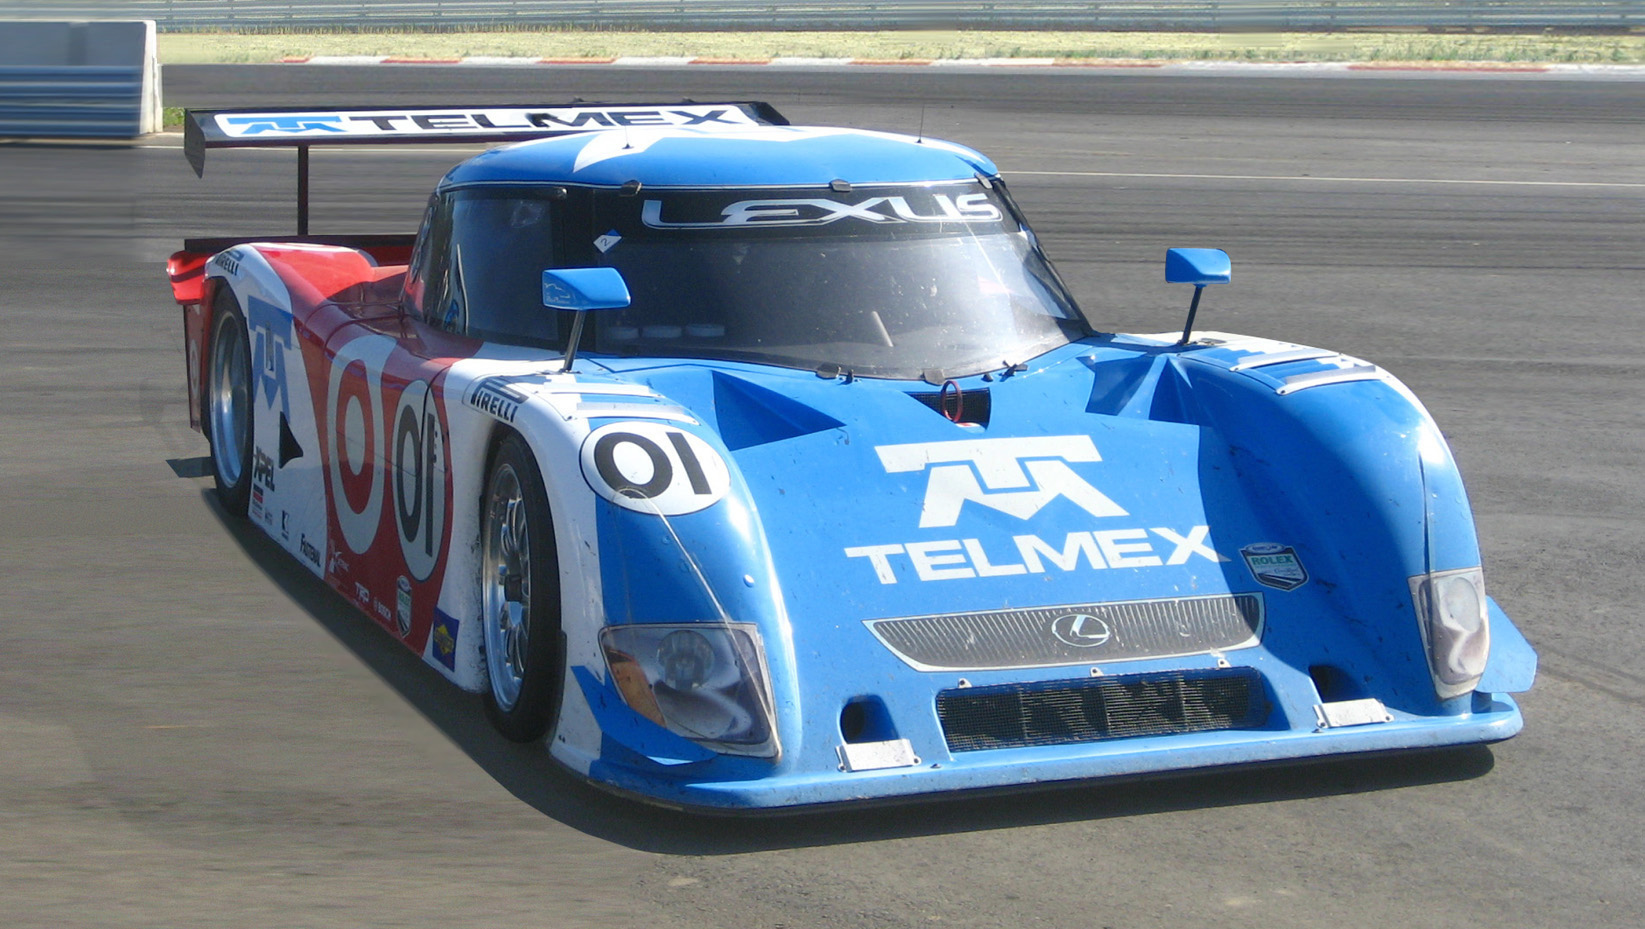 In 2006, 2007, and 2008, Lexus won the Rolex Sports Car Series Manufacturers' Championship